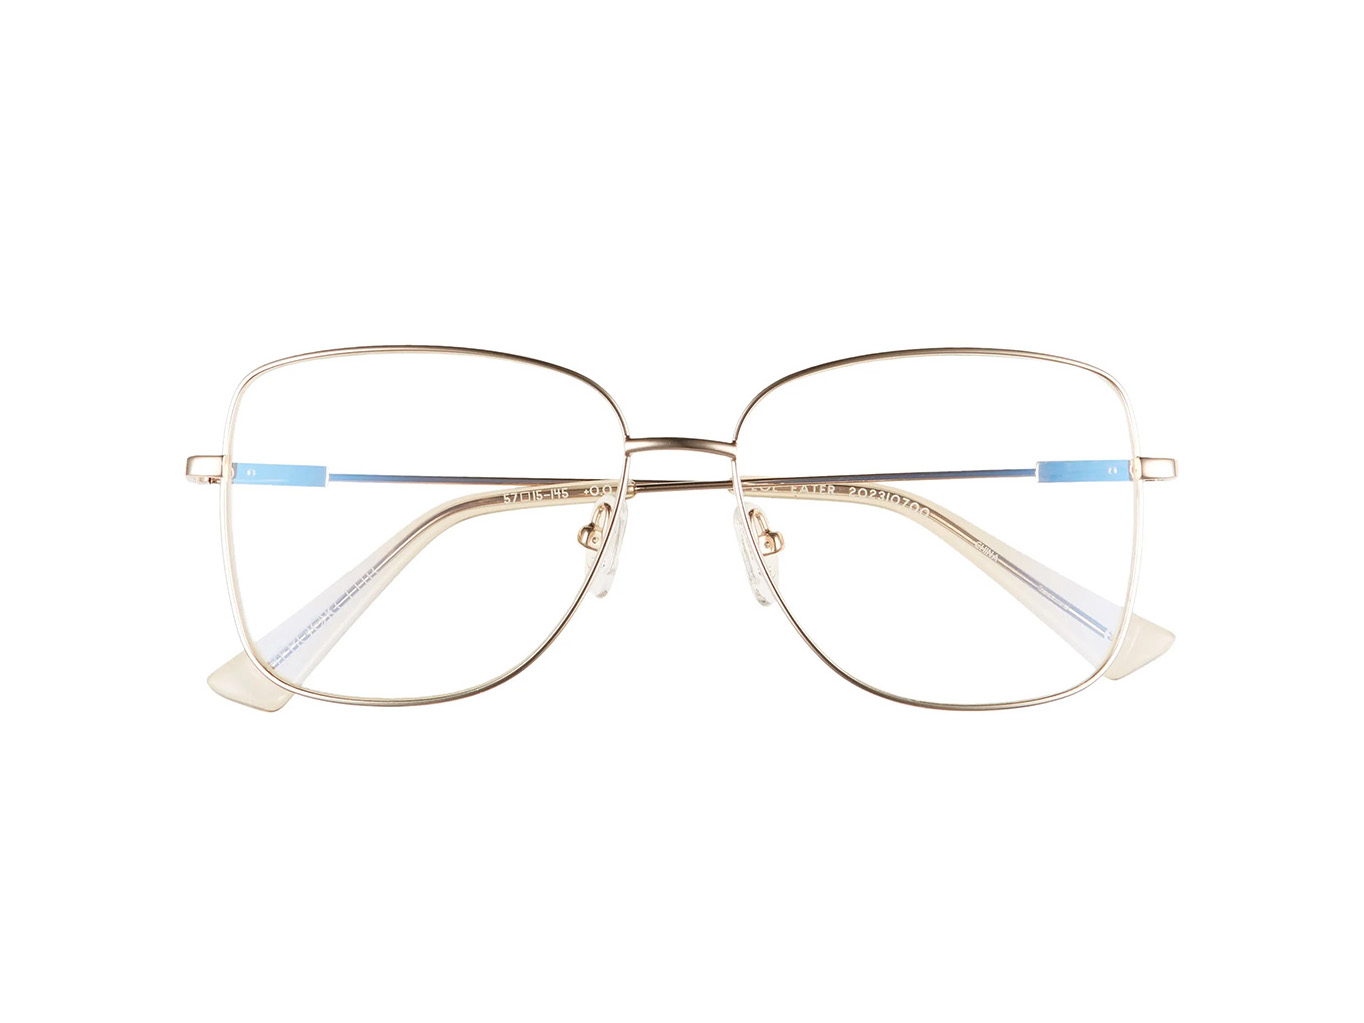 Stylish Reading Glasses - The Book Club